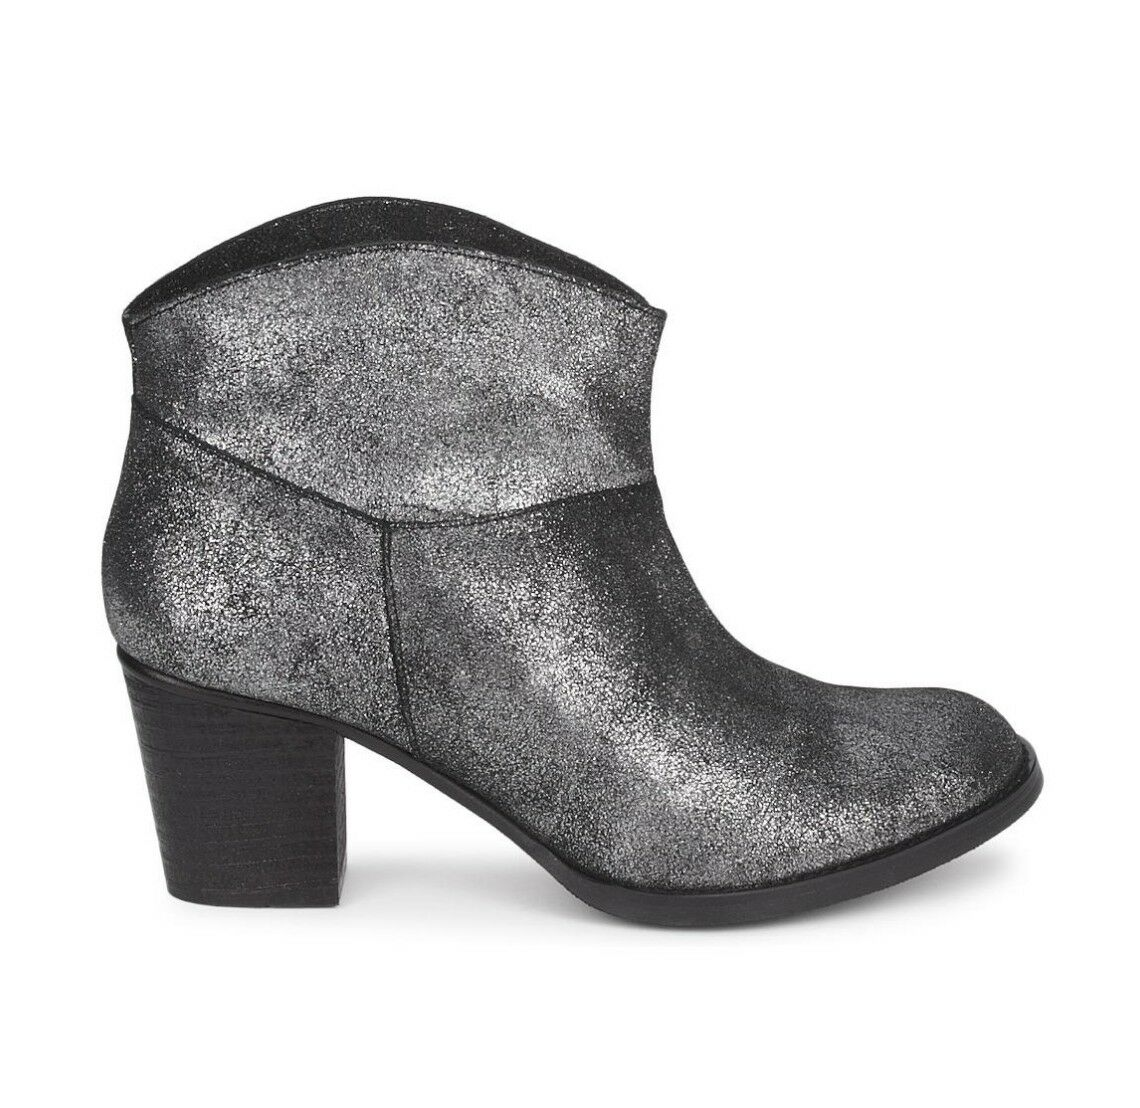 KG by Kurt Geiger Suzie Pewter Silver Metallic Suede Ankle Boots US 5 NEW